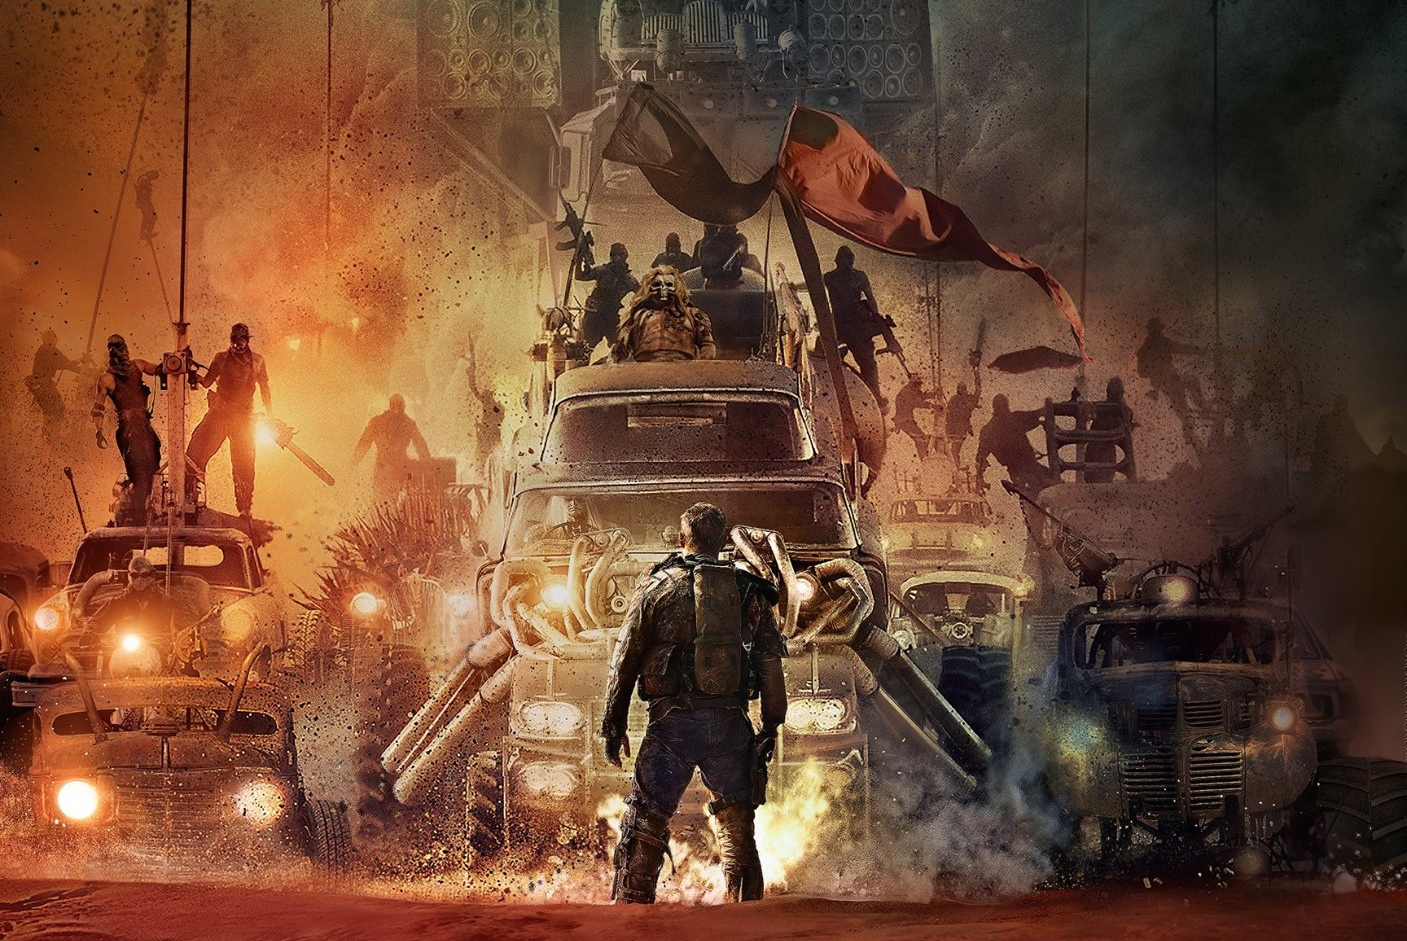 mad-max-fury-road-sequel-titled-the-wasteland.jpg